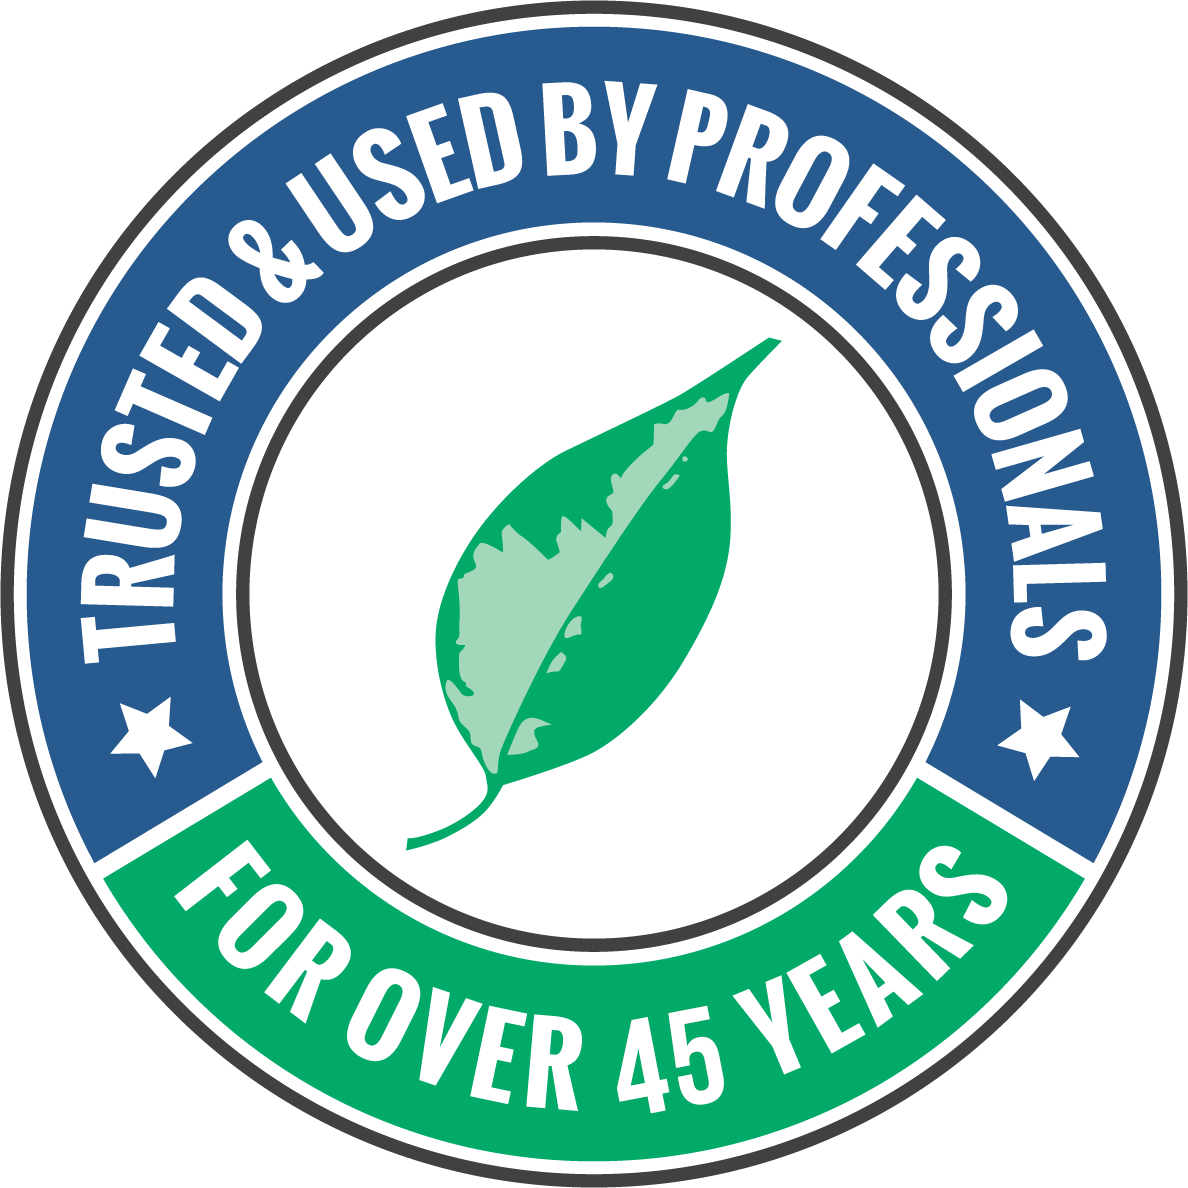 Trusted & Used By Professionals For Over 45 Years